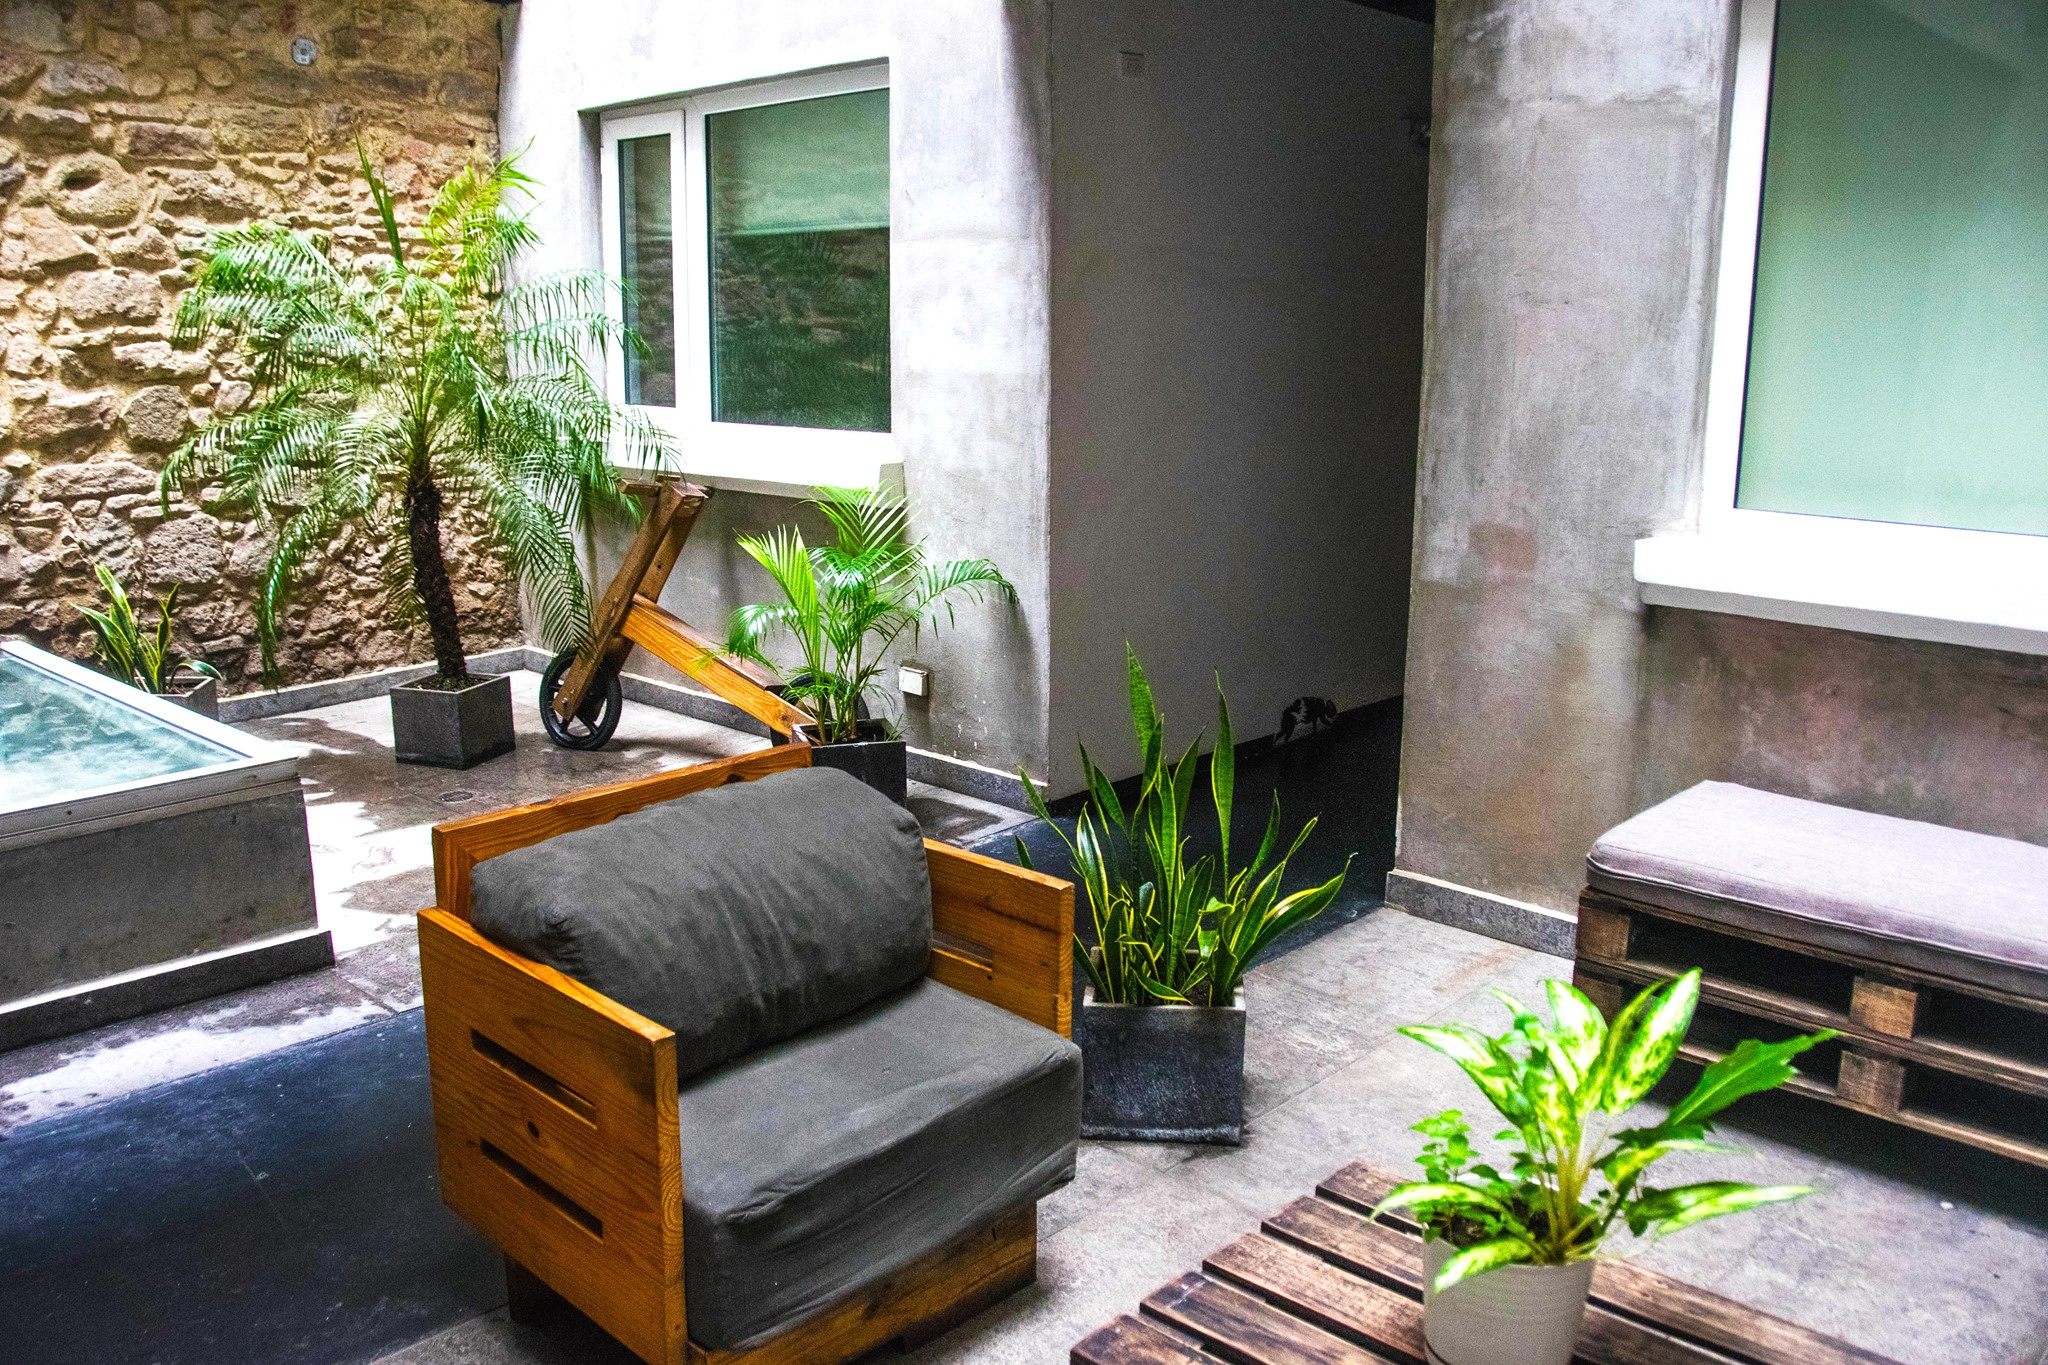 common area with pallet furniture and plants at Gatto Blanco Party Hotel